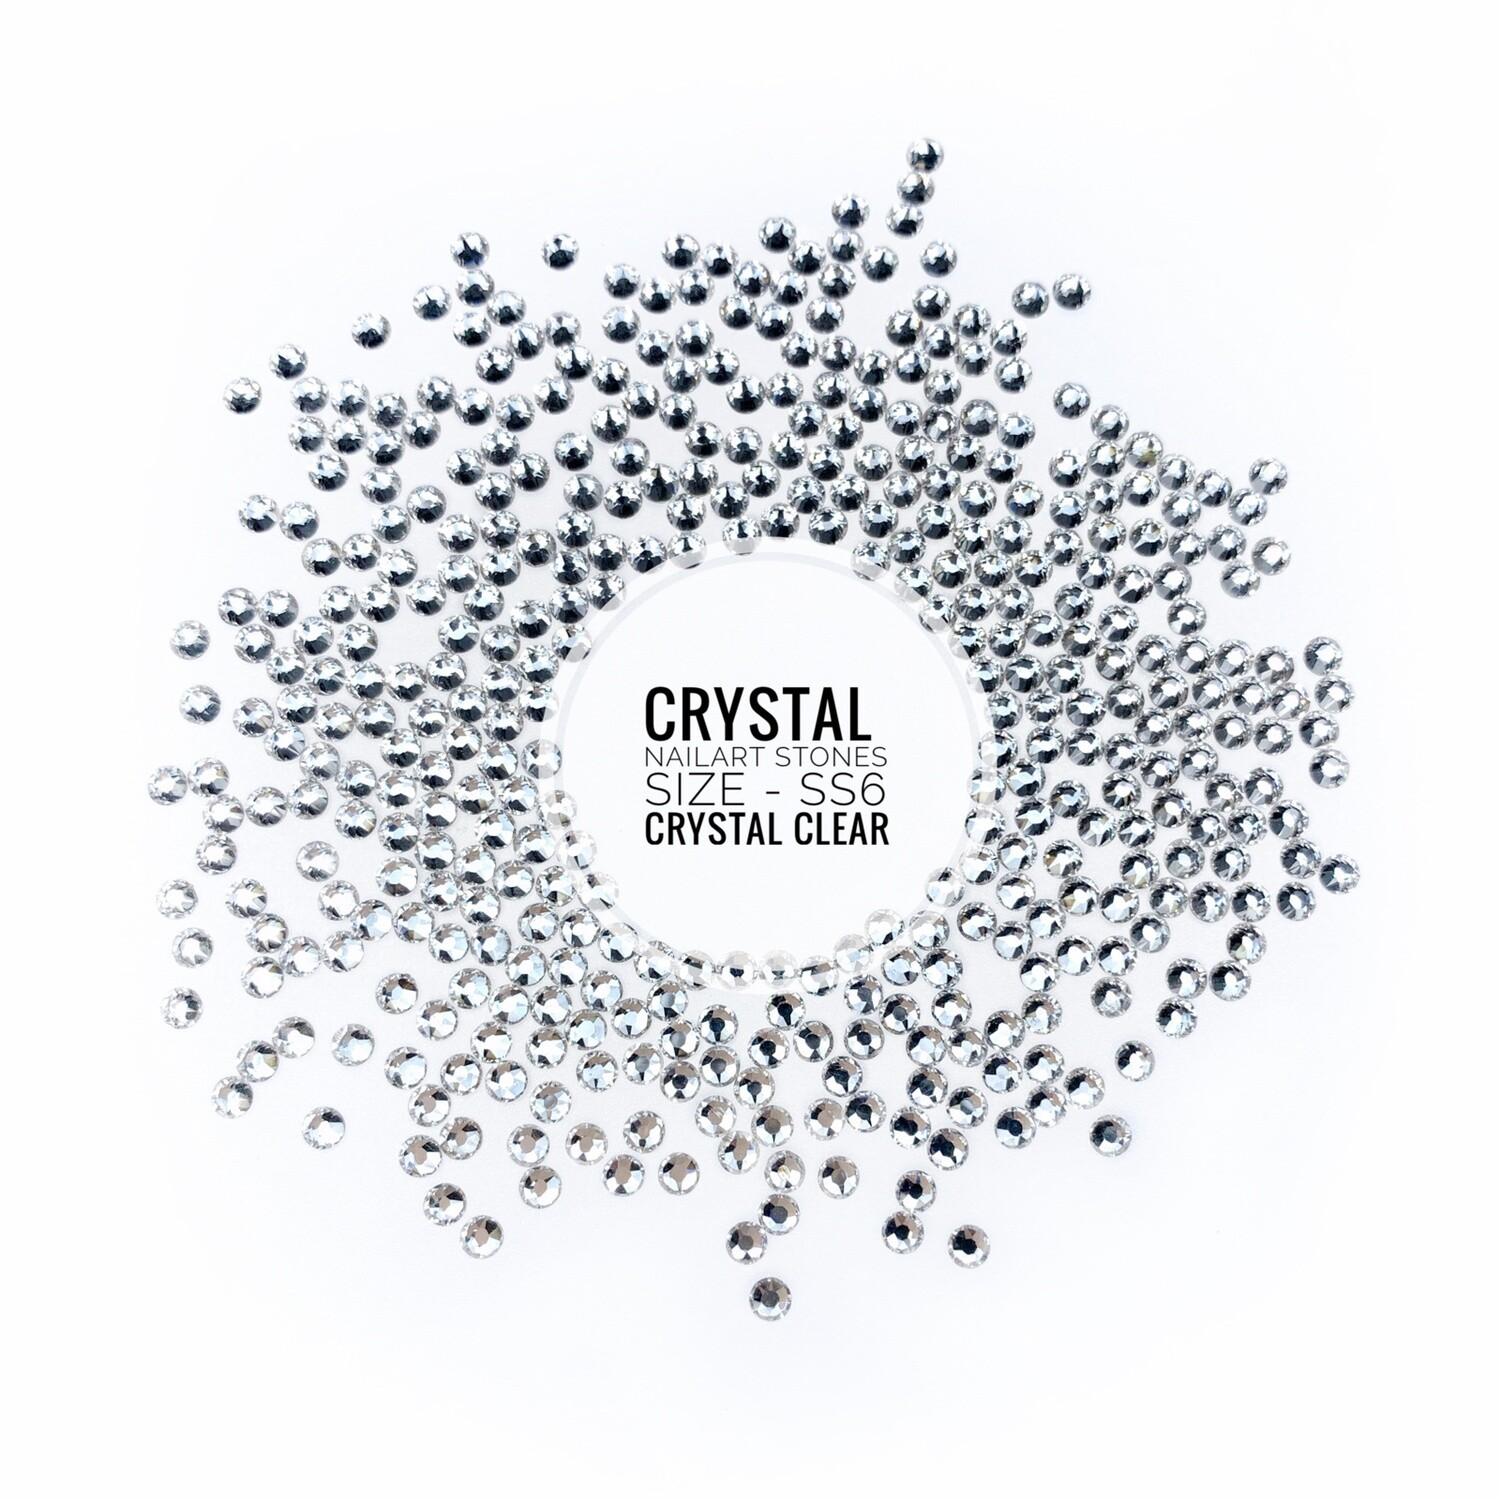 Crystal Stones Clear, 100 pcs